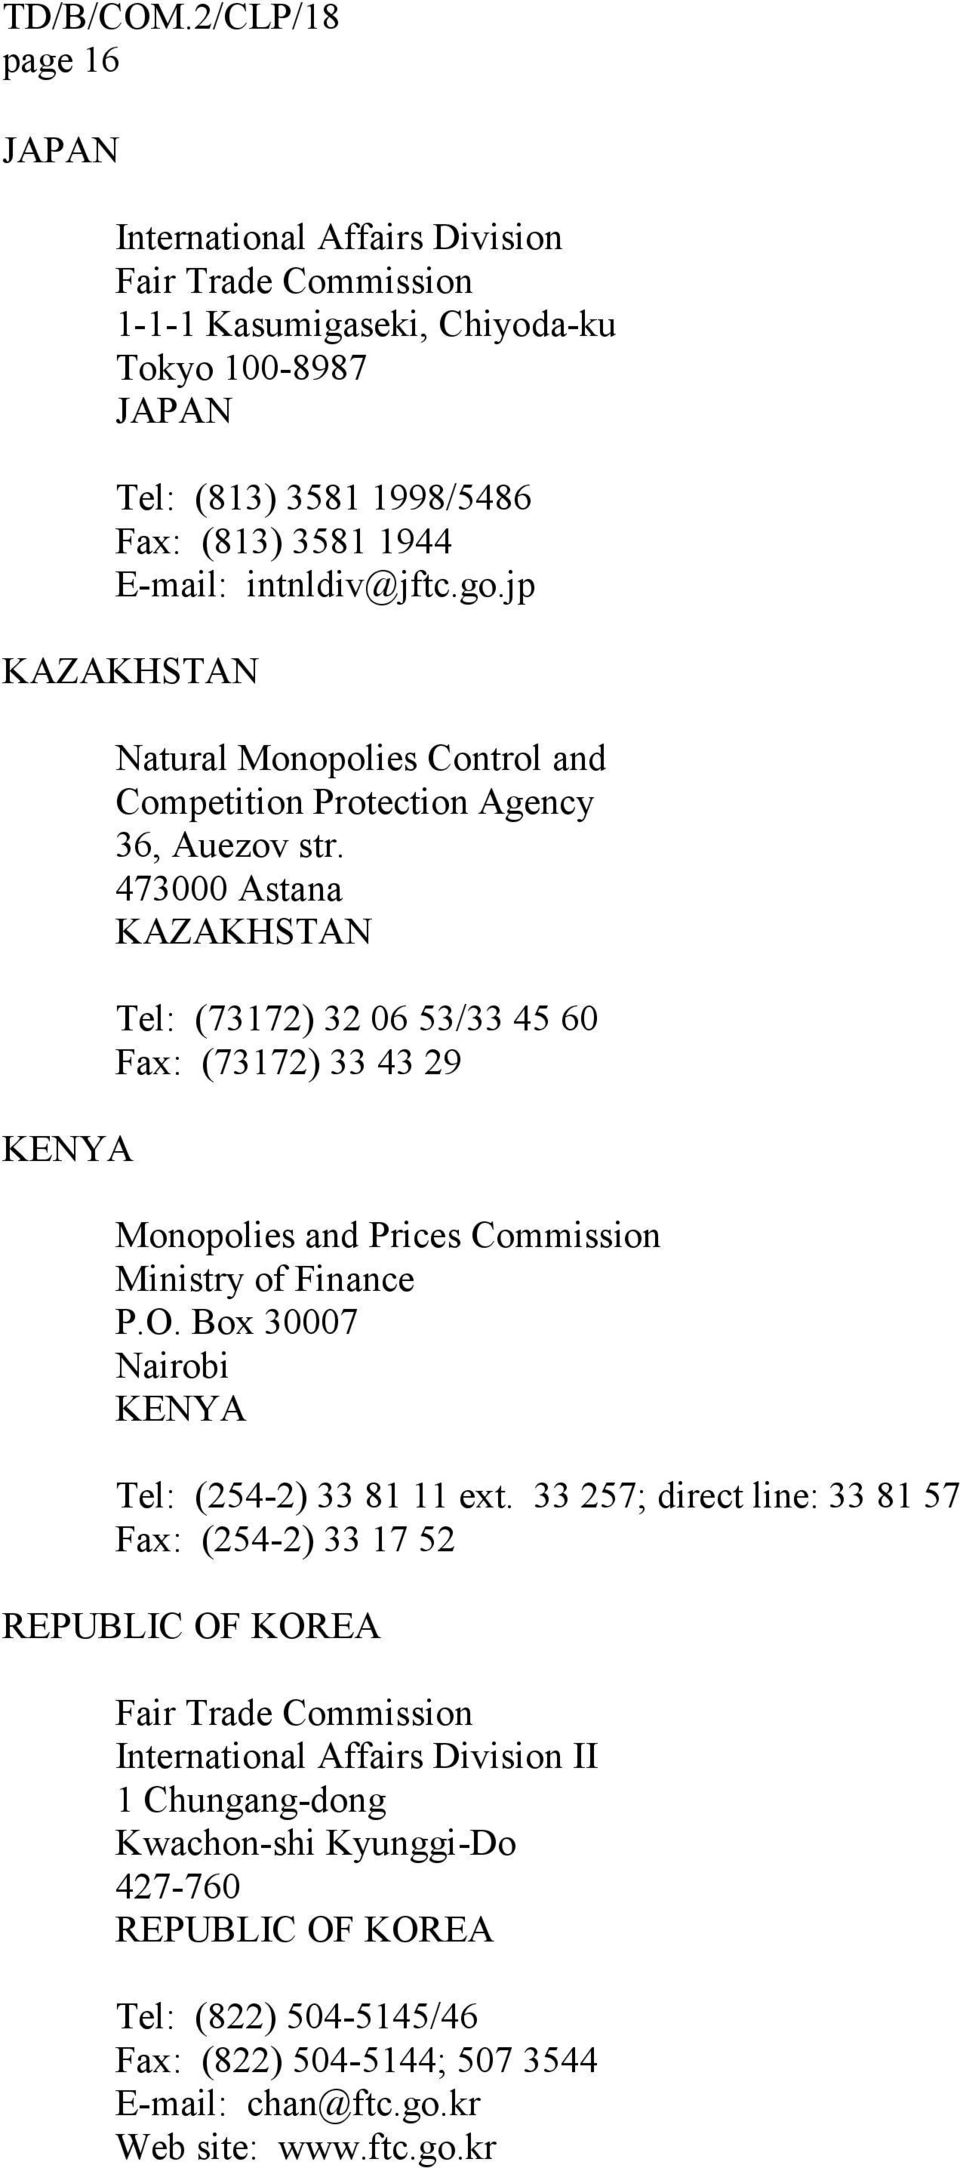 473000 Astana KAZAKHSTAN Tel: (73172) 32 06 53/33 45 60 Fax: (73172) 33 43 29 Monopolies and Prices Commission Ministry of Finance P.O. Box 30007 Nairobi KENYA Tel: (254-2) 33 81 11 ext.